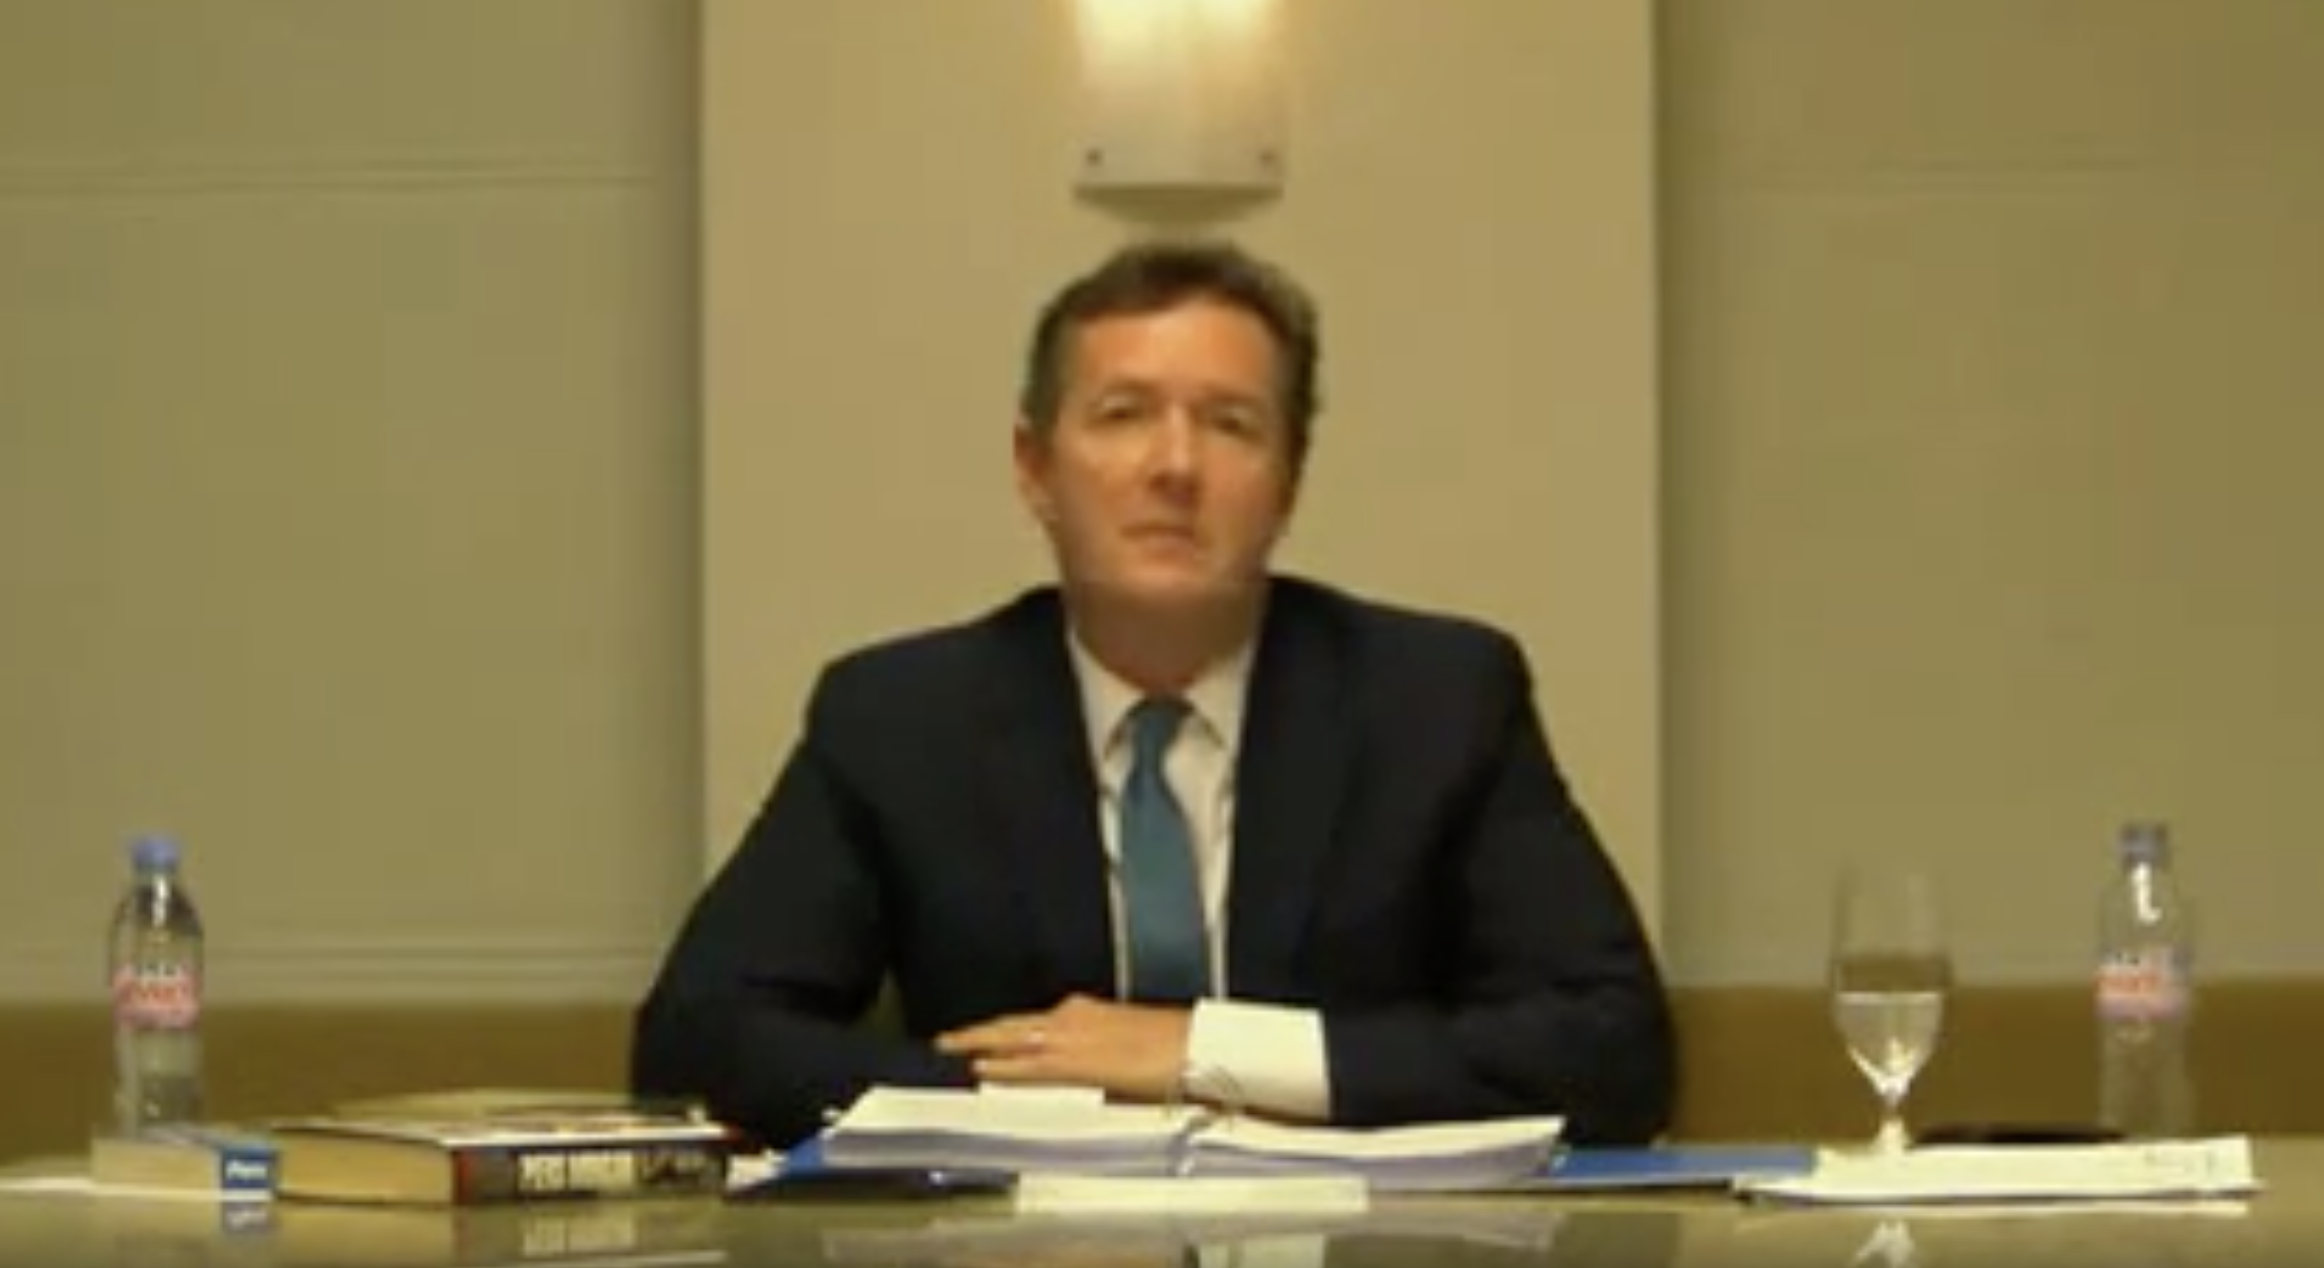 Denials: Piers Morgan denied knowledge of wrongdoing at the Leveson Inquiry in 2012.